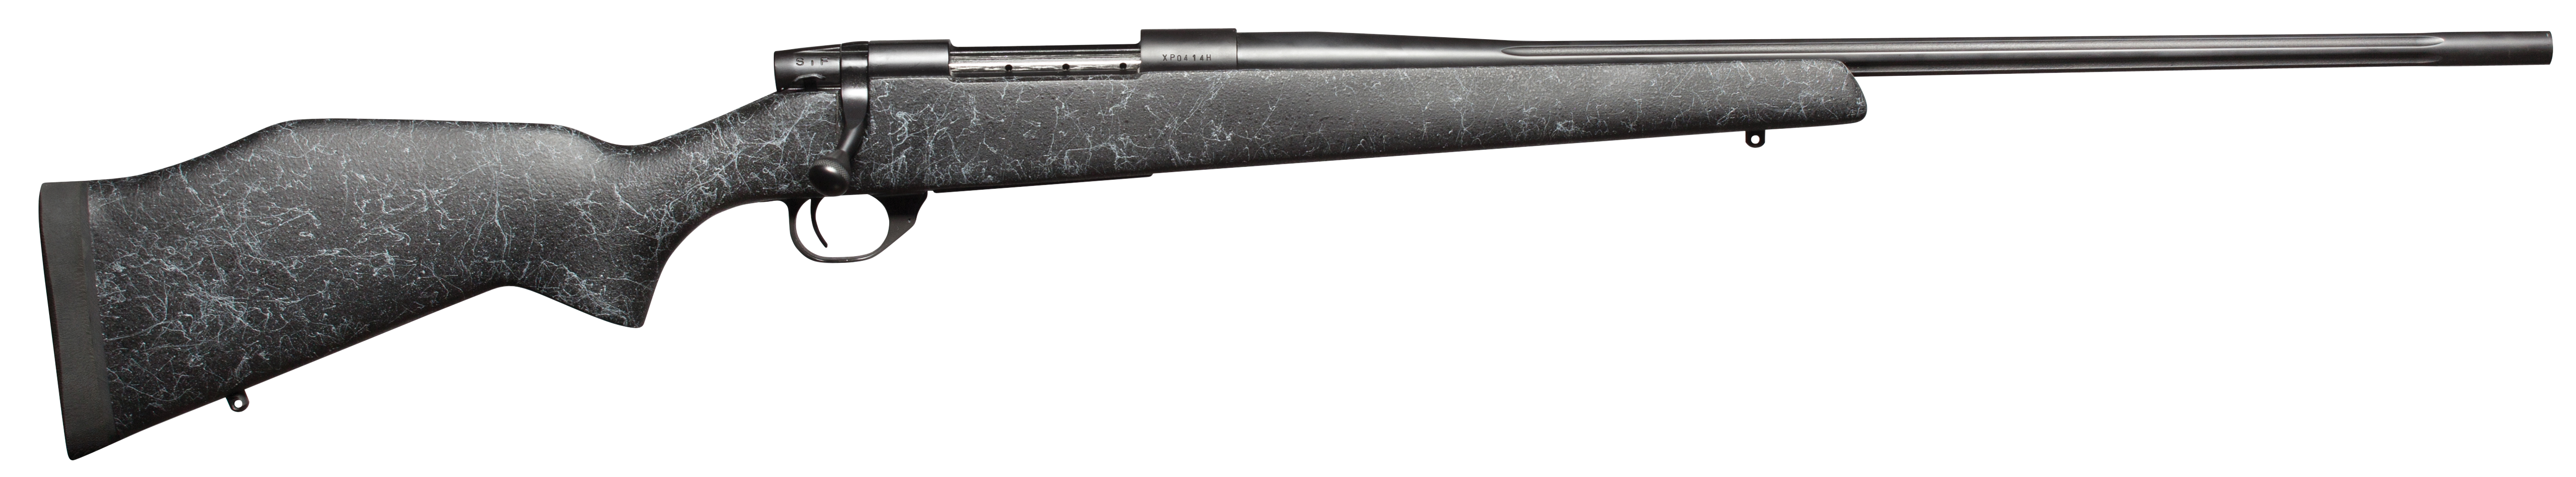 Weatherby Vanguard Wilderness 300 Wby Mag 26